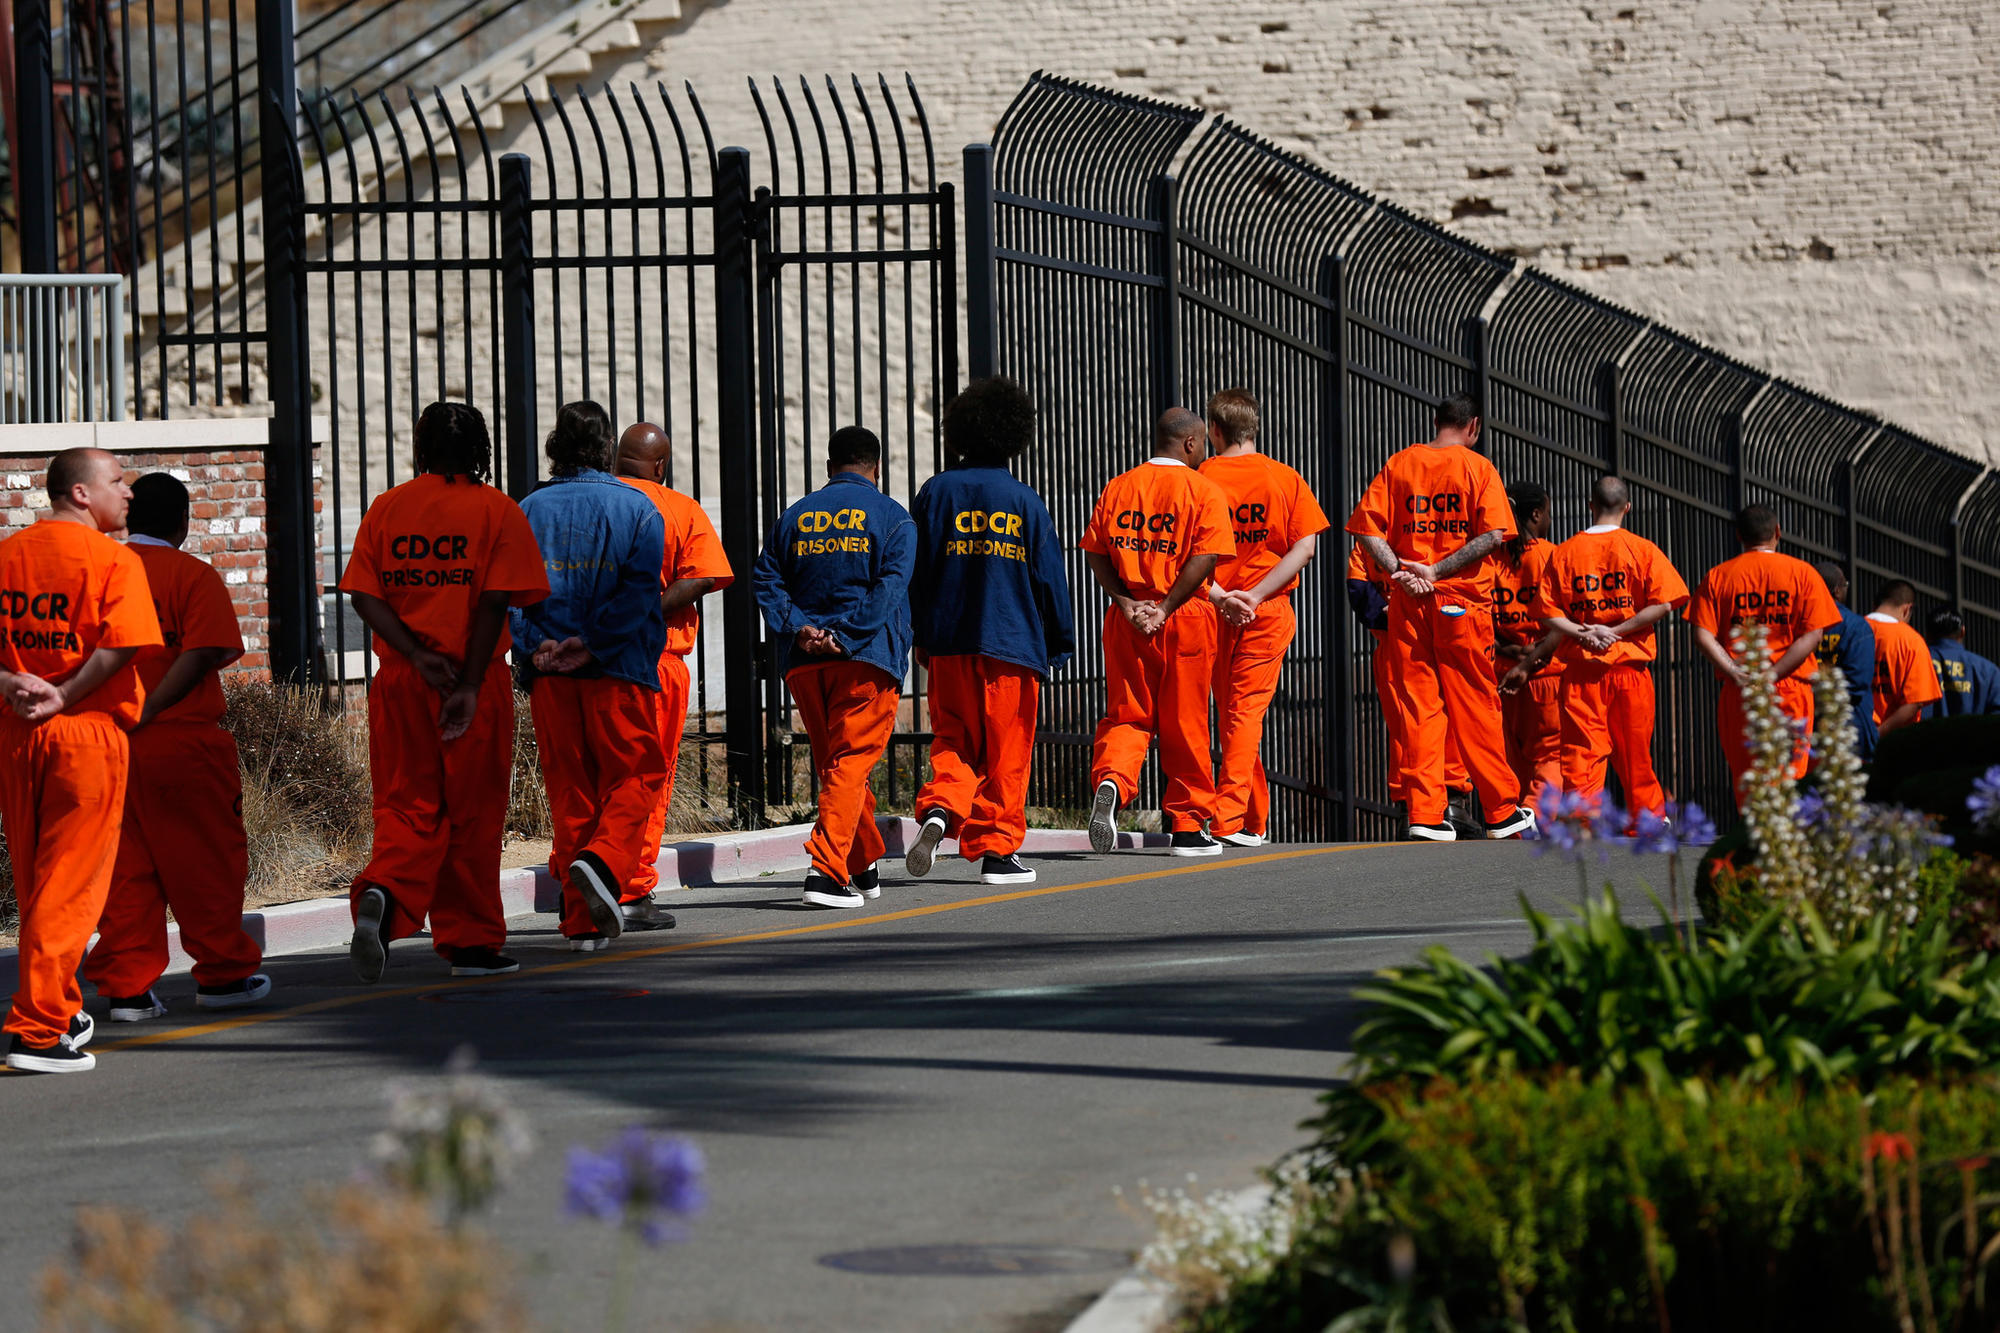 At $75,560, housing a prisoner in California now costs more than a year at Harvard